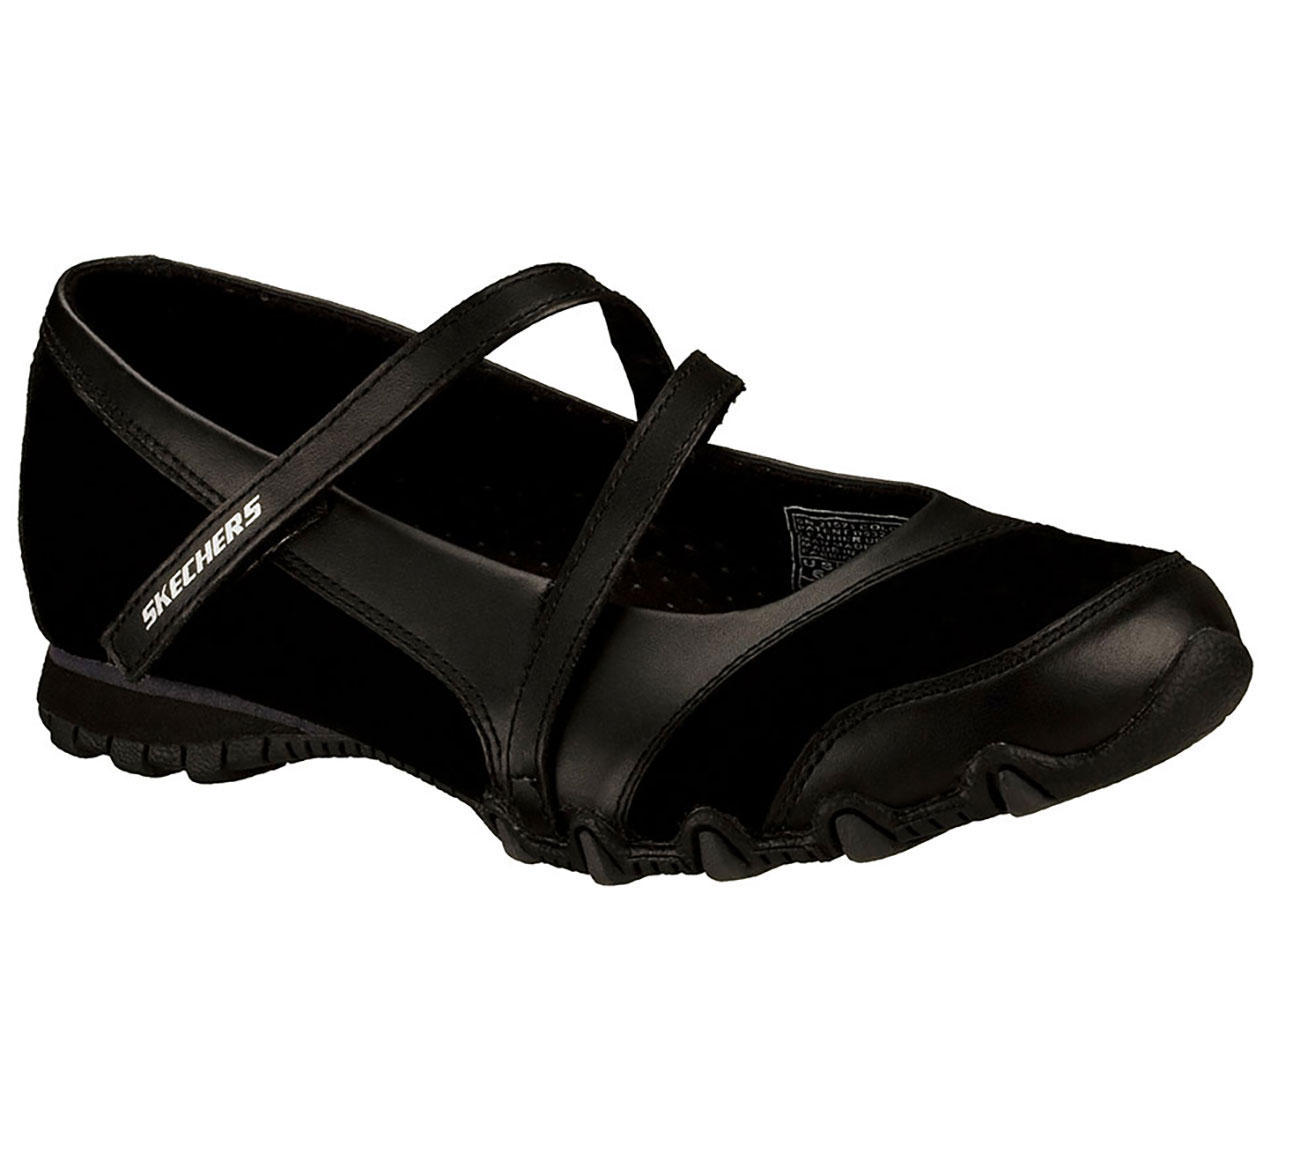 Skechers Leather Mary Jane Casual Shoes